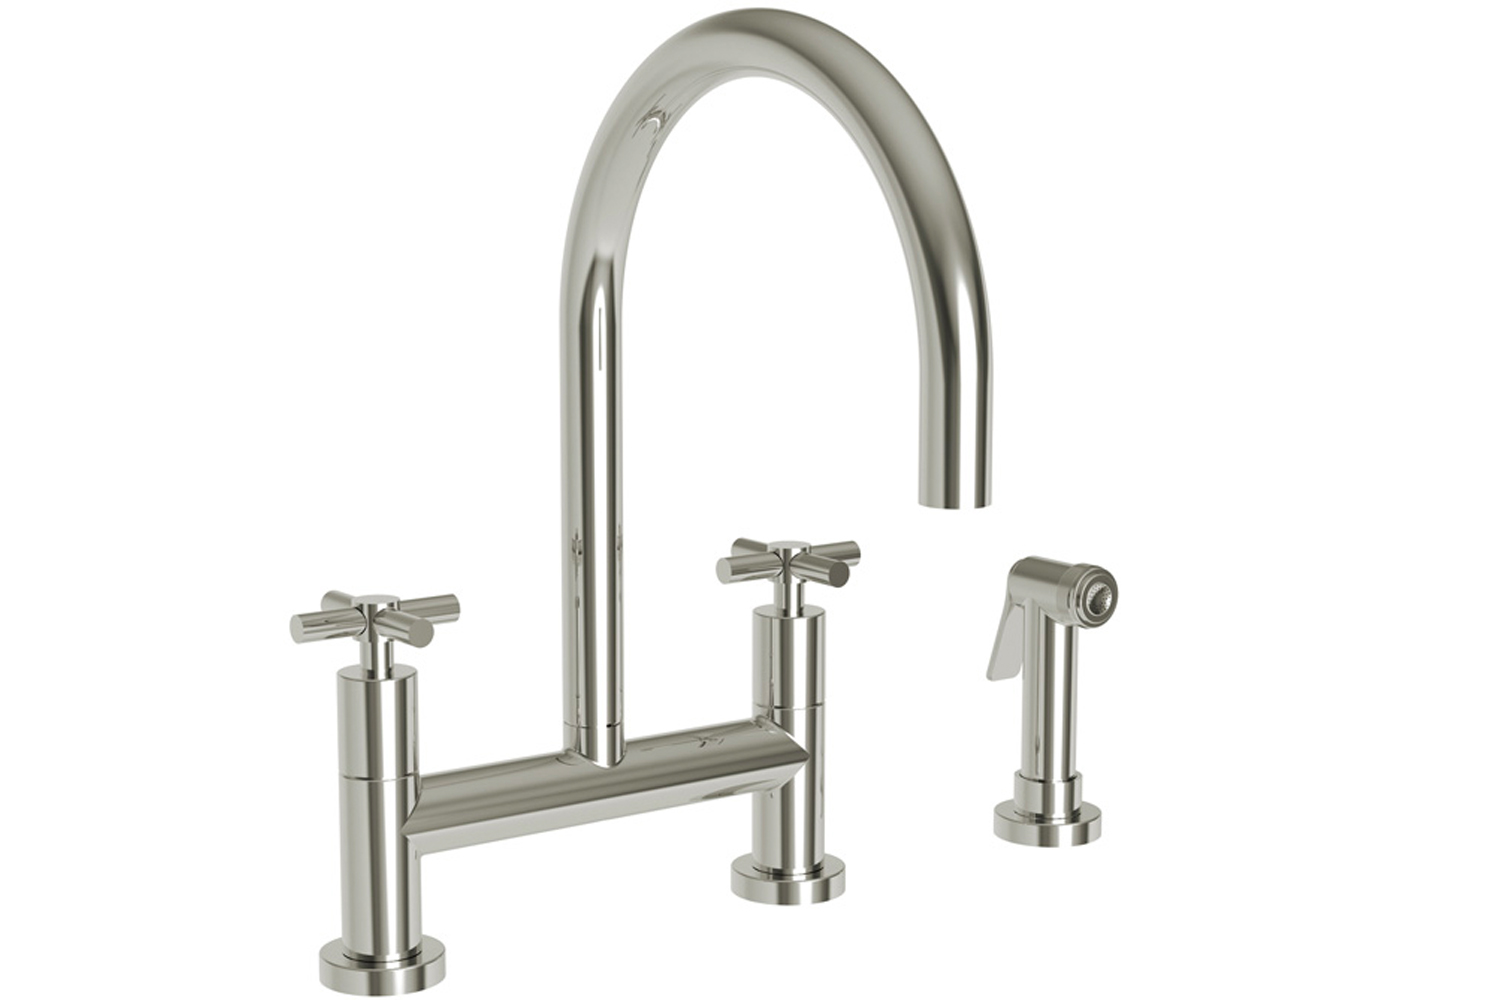 The new East Linear bridge faucet's streamlined features complement the spout's smooth contours and architectural design.